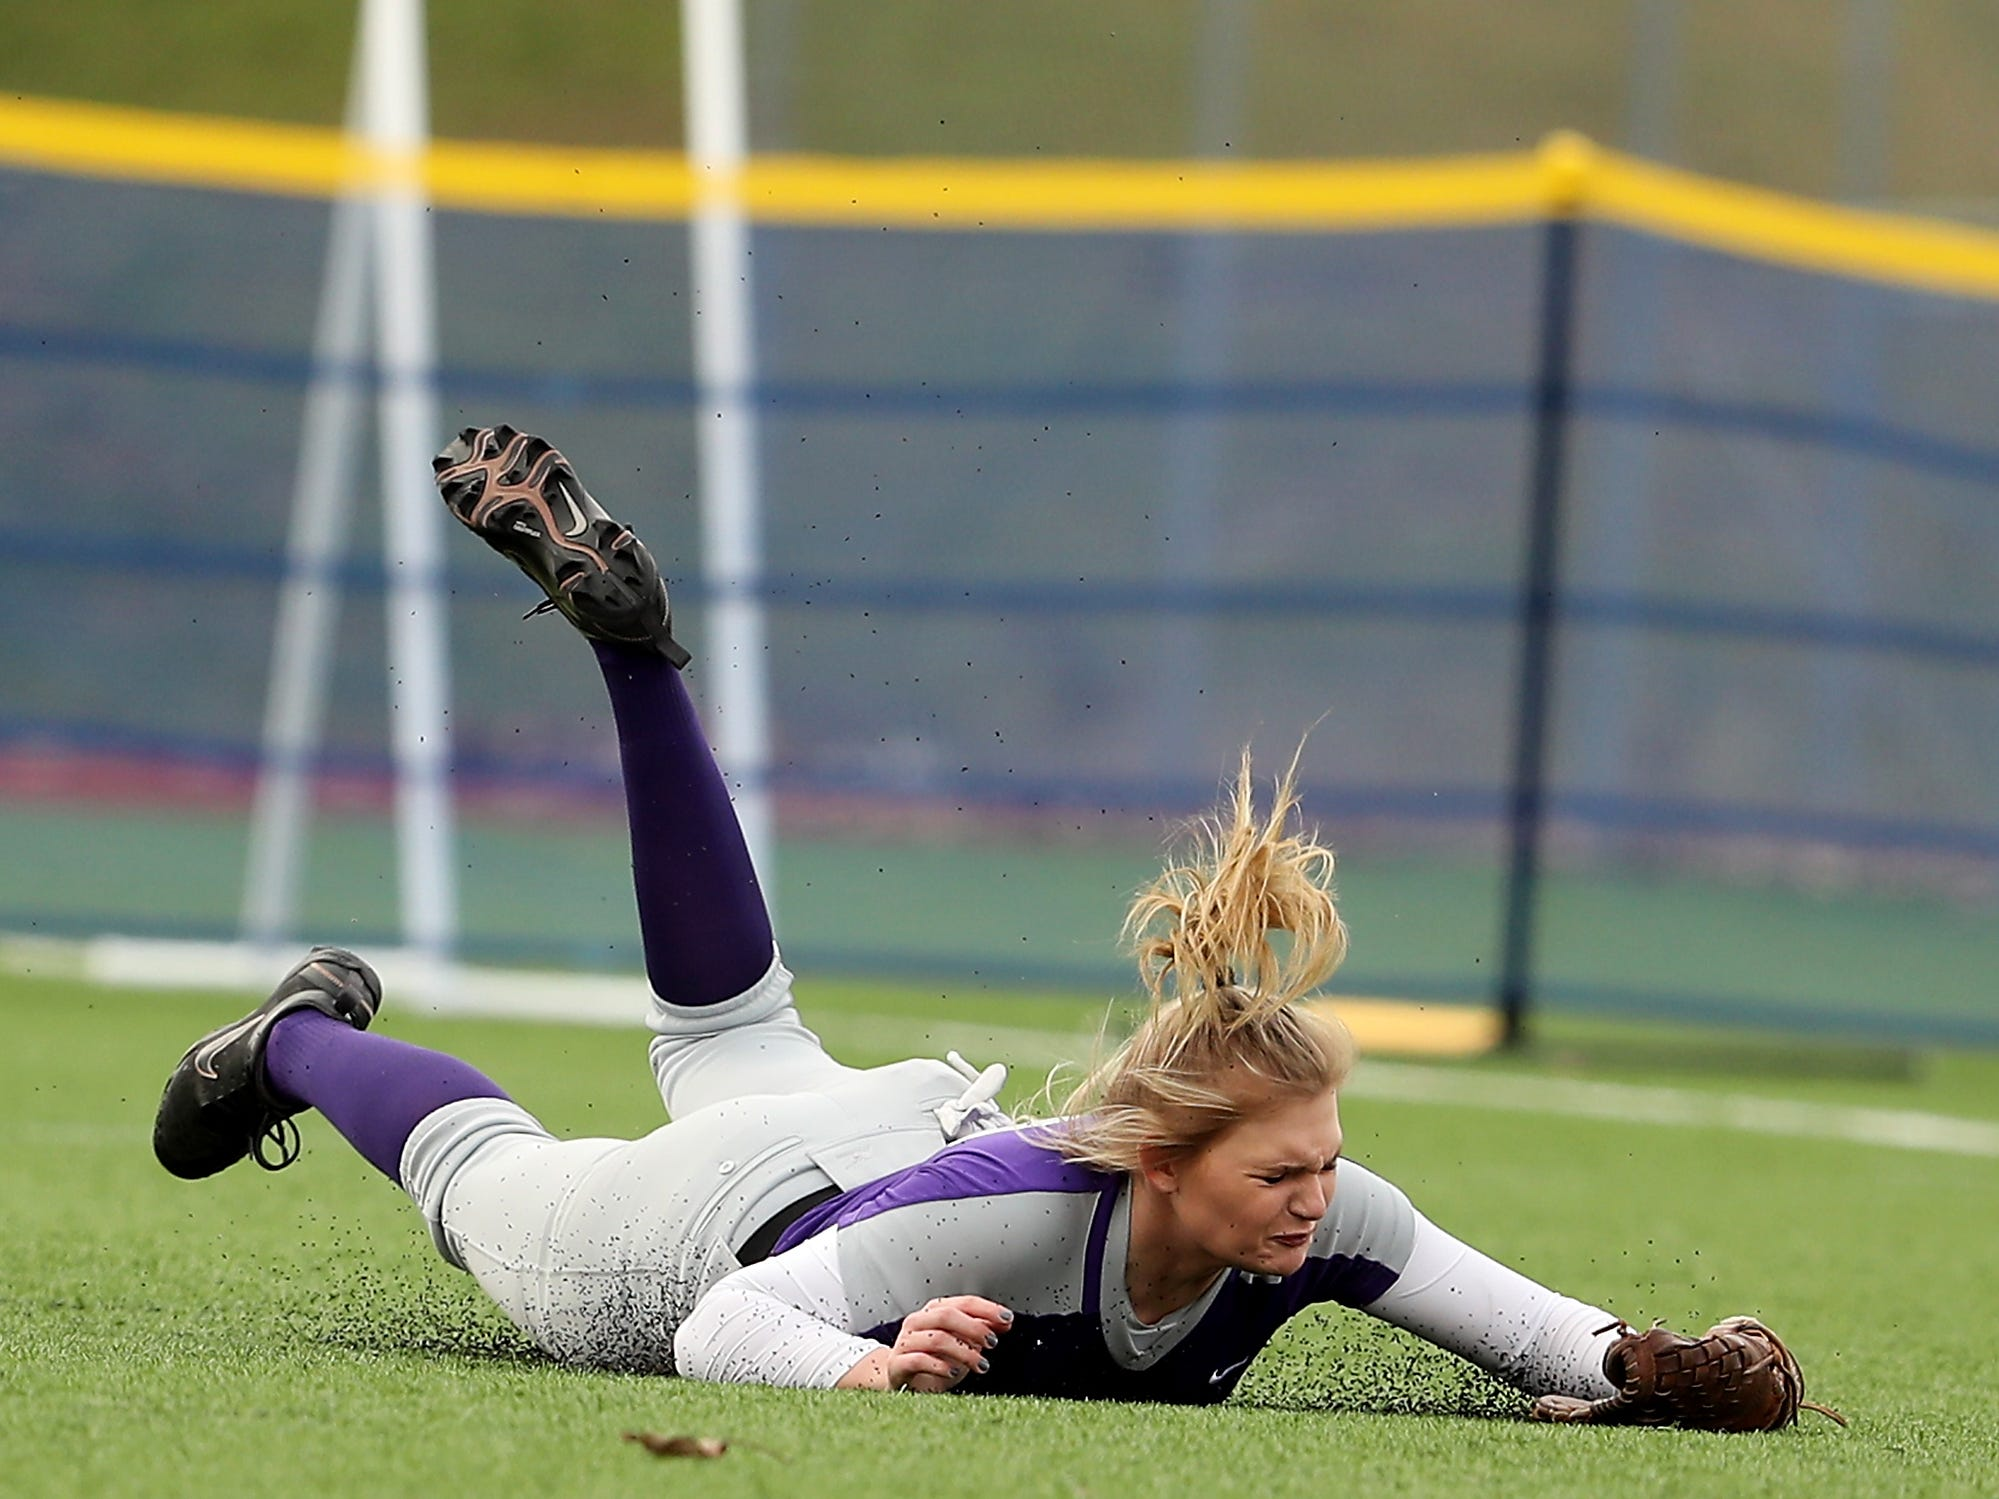 North Kitsap's Makayla Stockman makes a dive and hits the turf while trying for a fly ball during their game against Olympic at Gene Lobe Field on Wednesday, March 27, 2019.